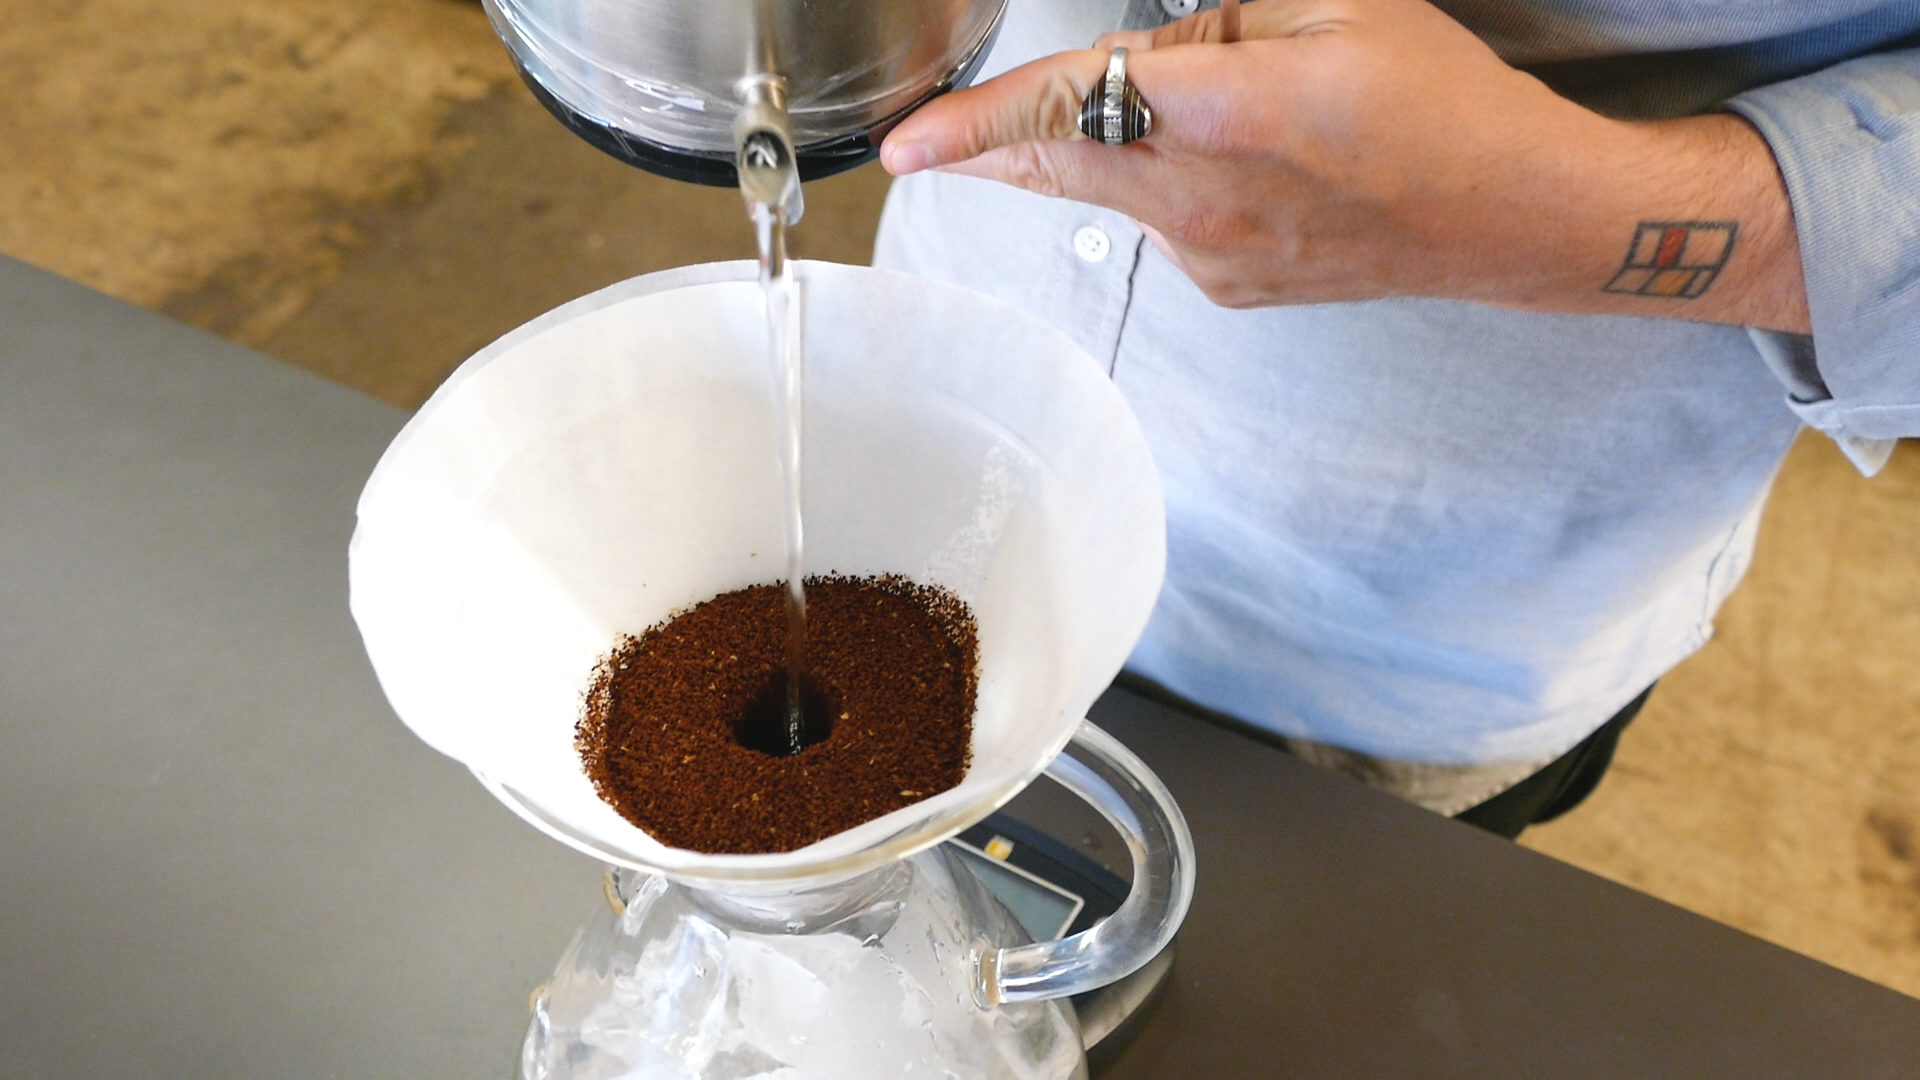 Step 4: Bloom The Coffee With 100g of Hot Water